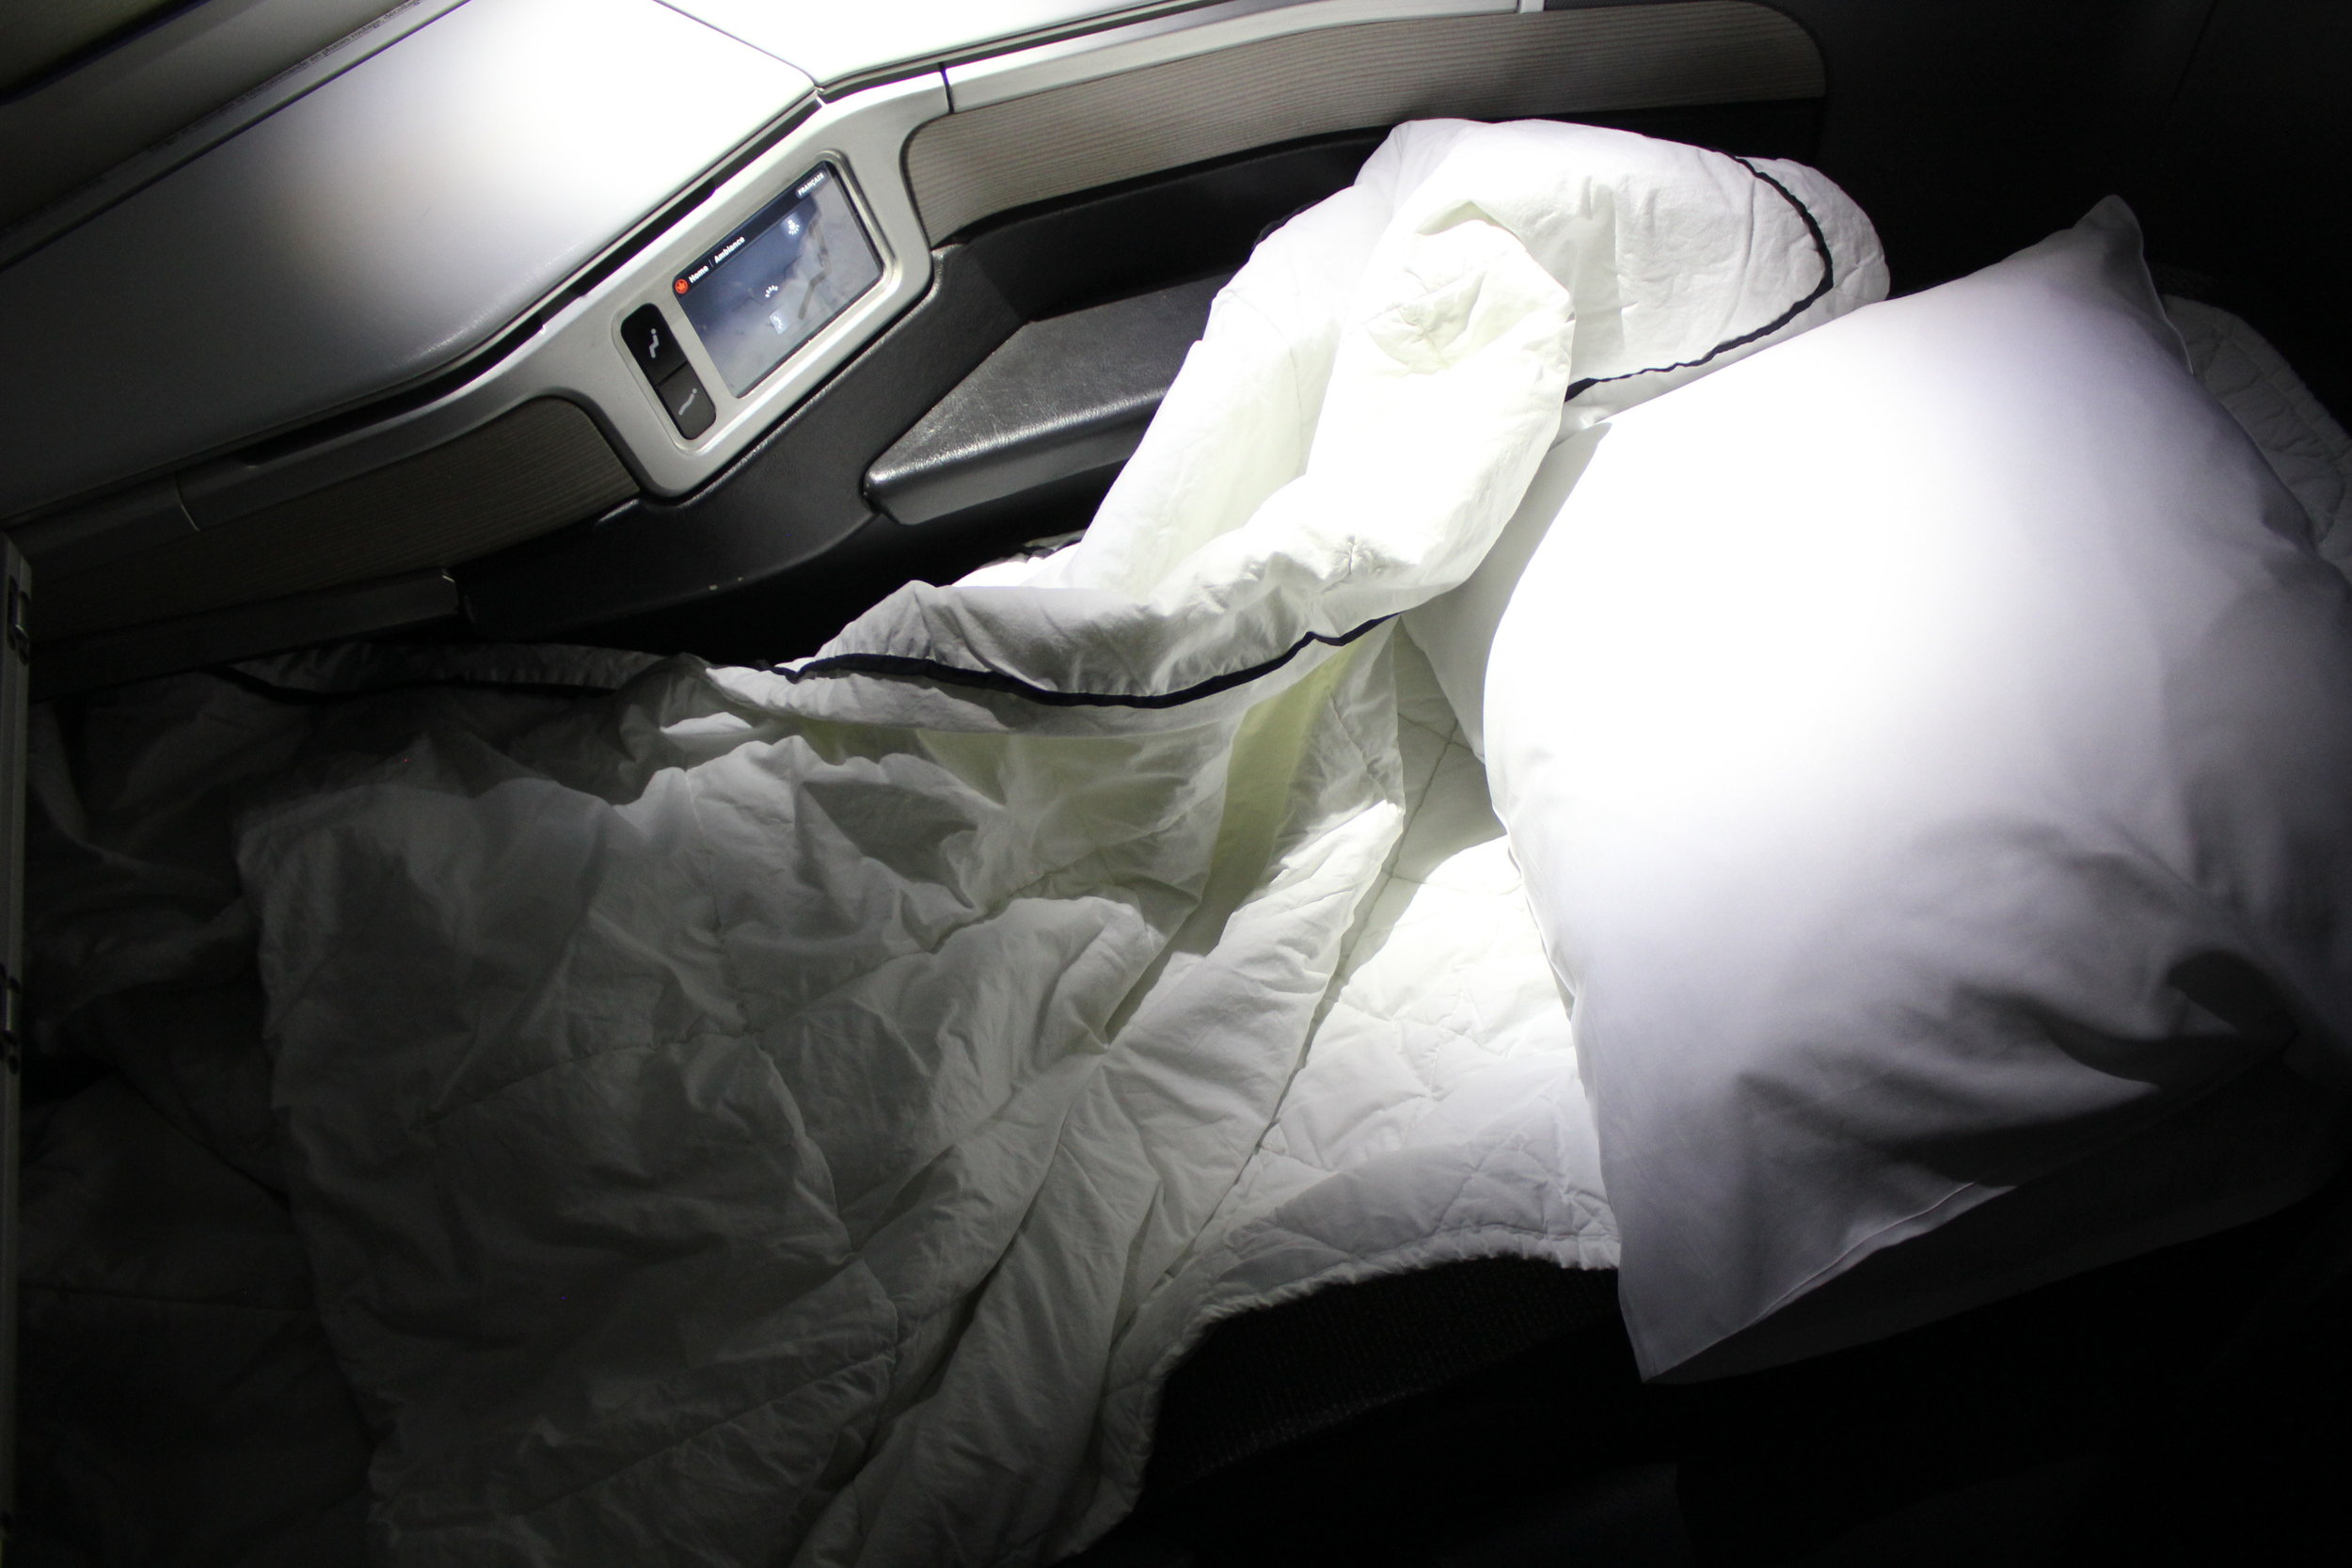 Air Canada business class – Bed